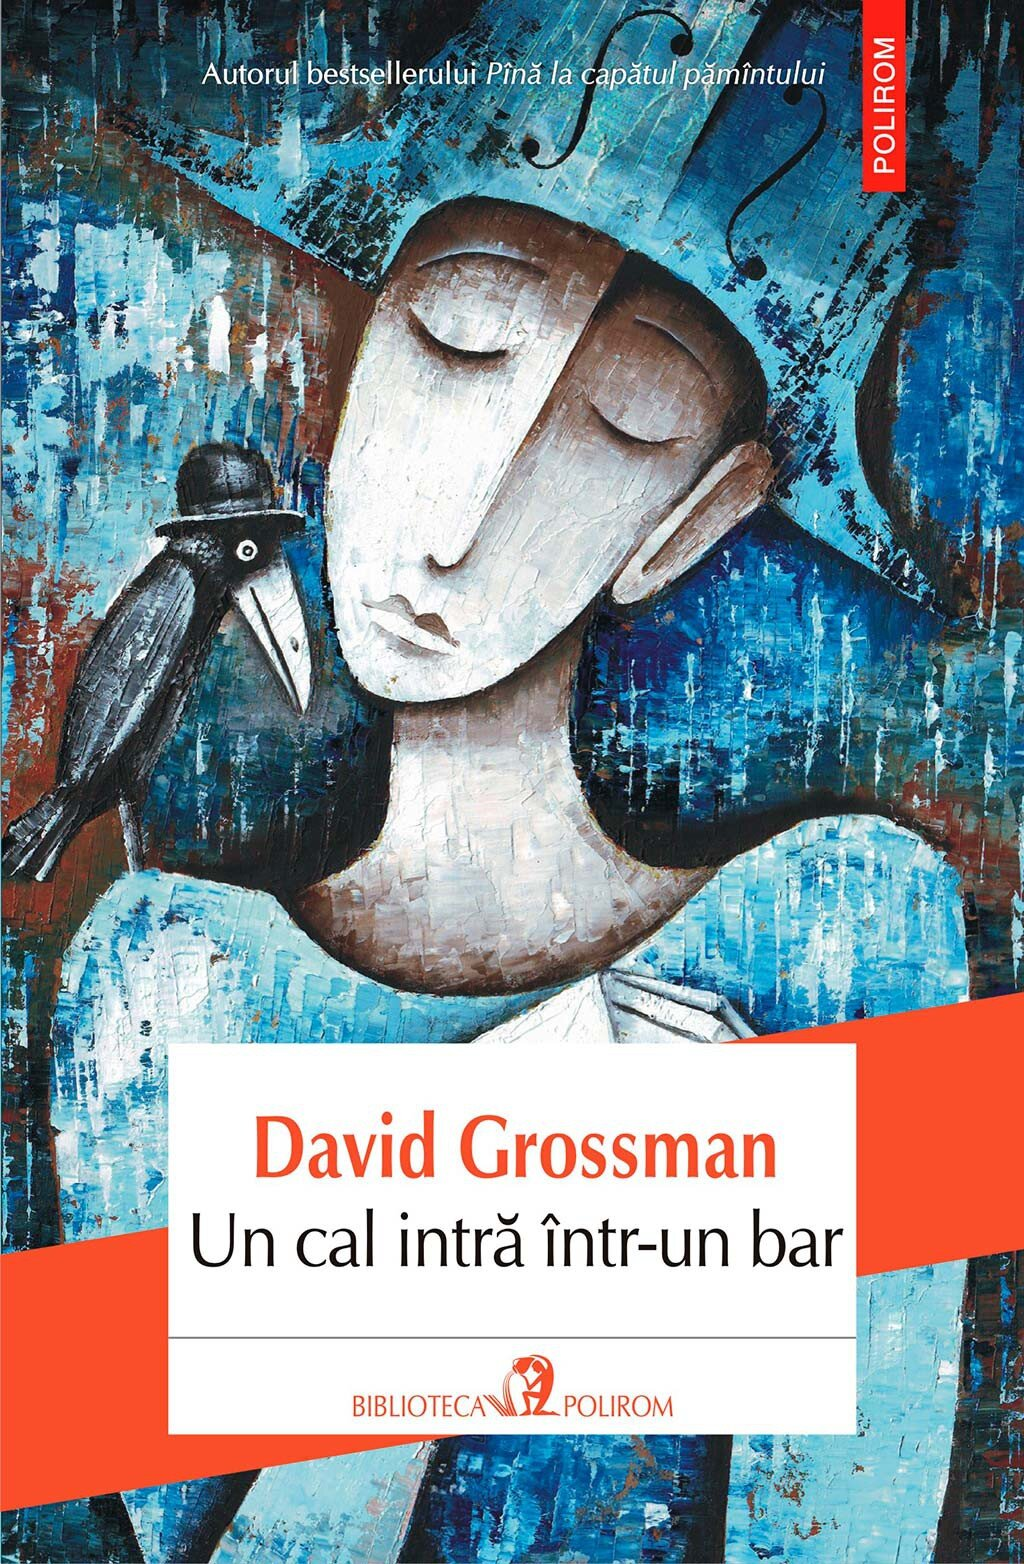 Un cal intra intr-un bar PDF (Download eBook)